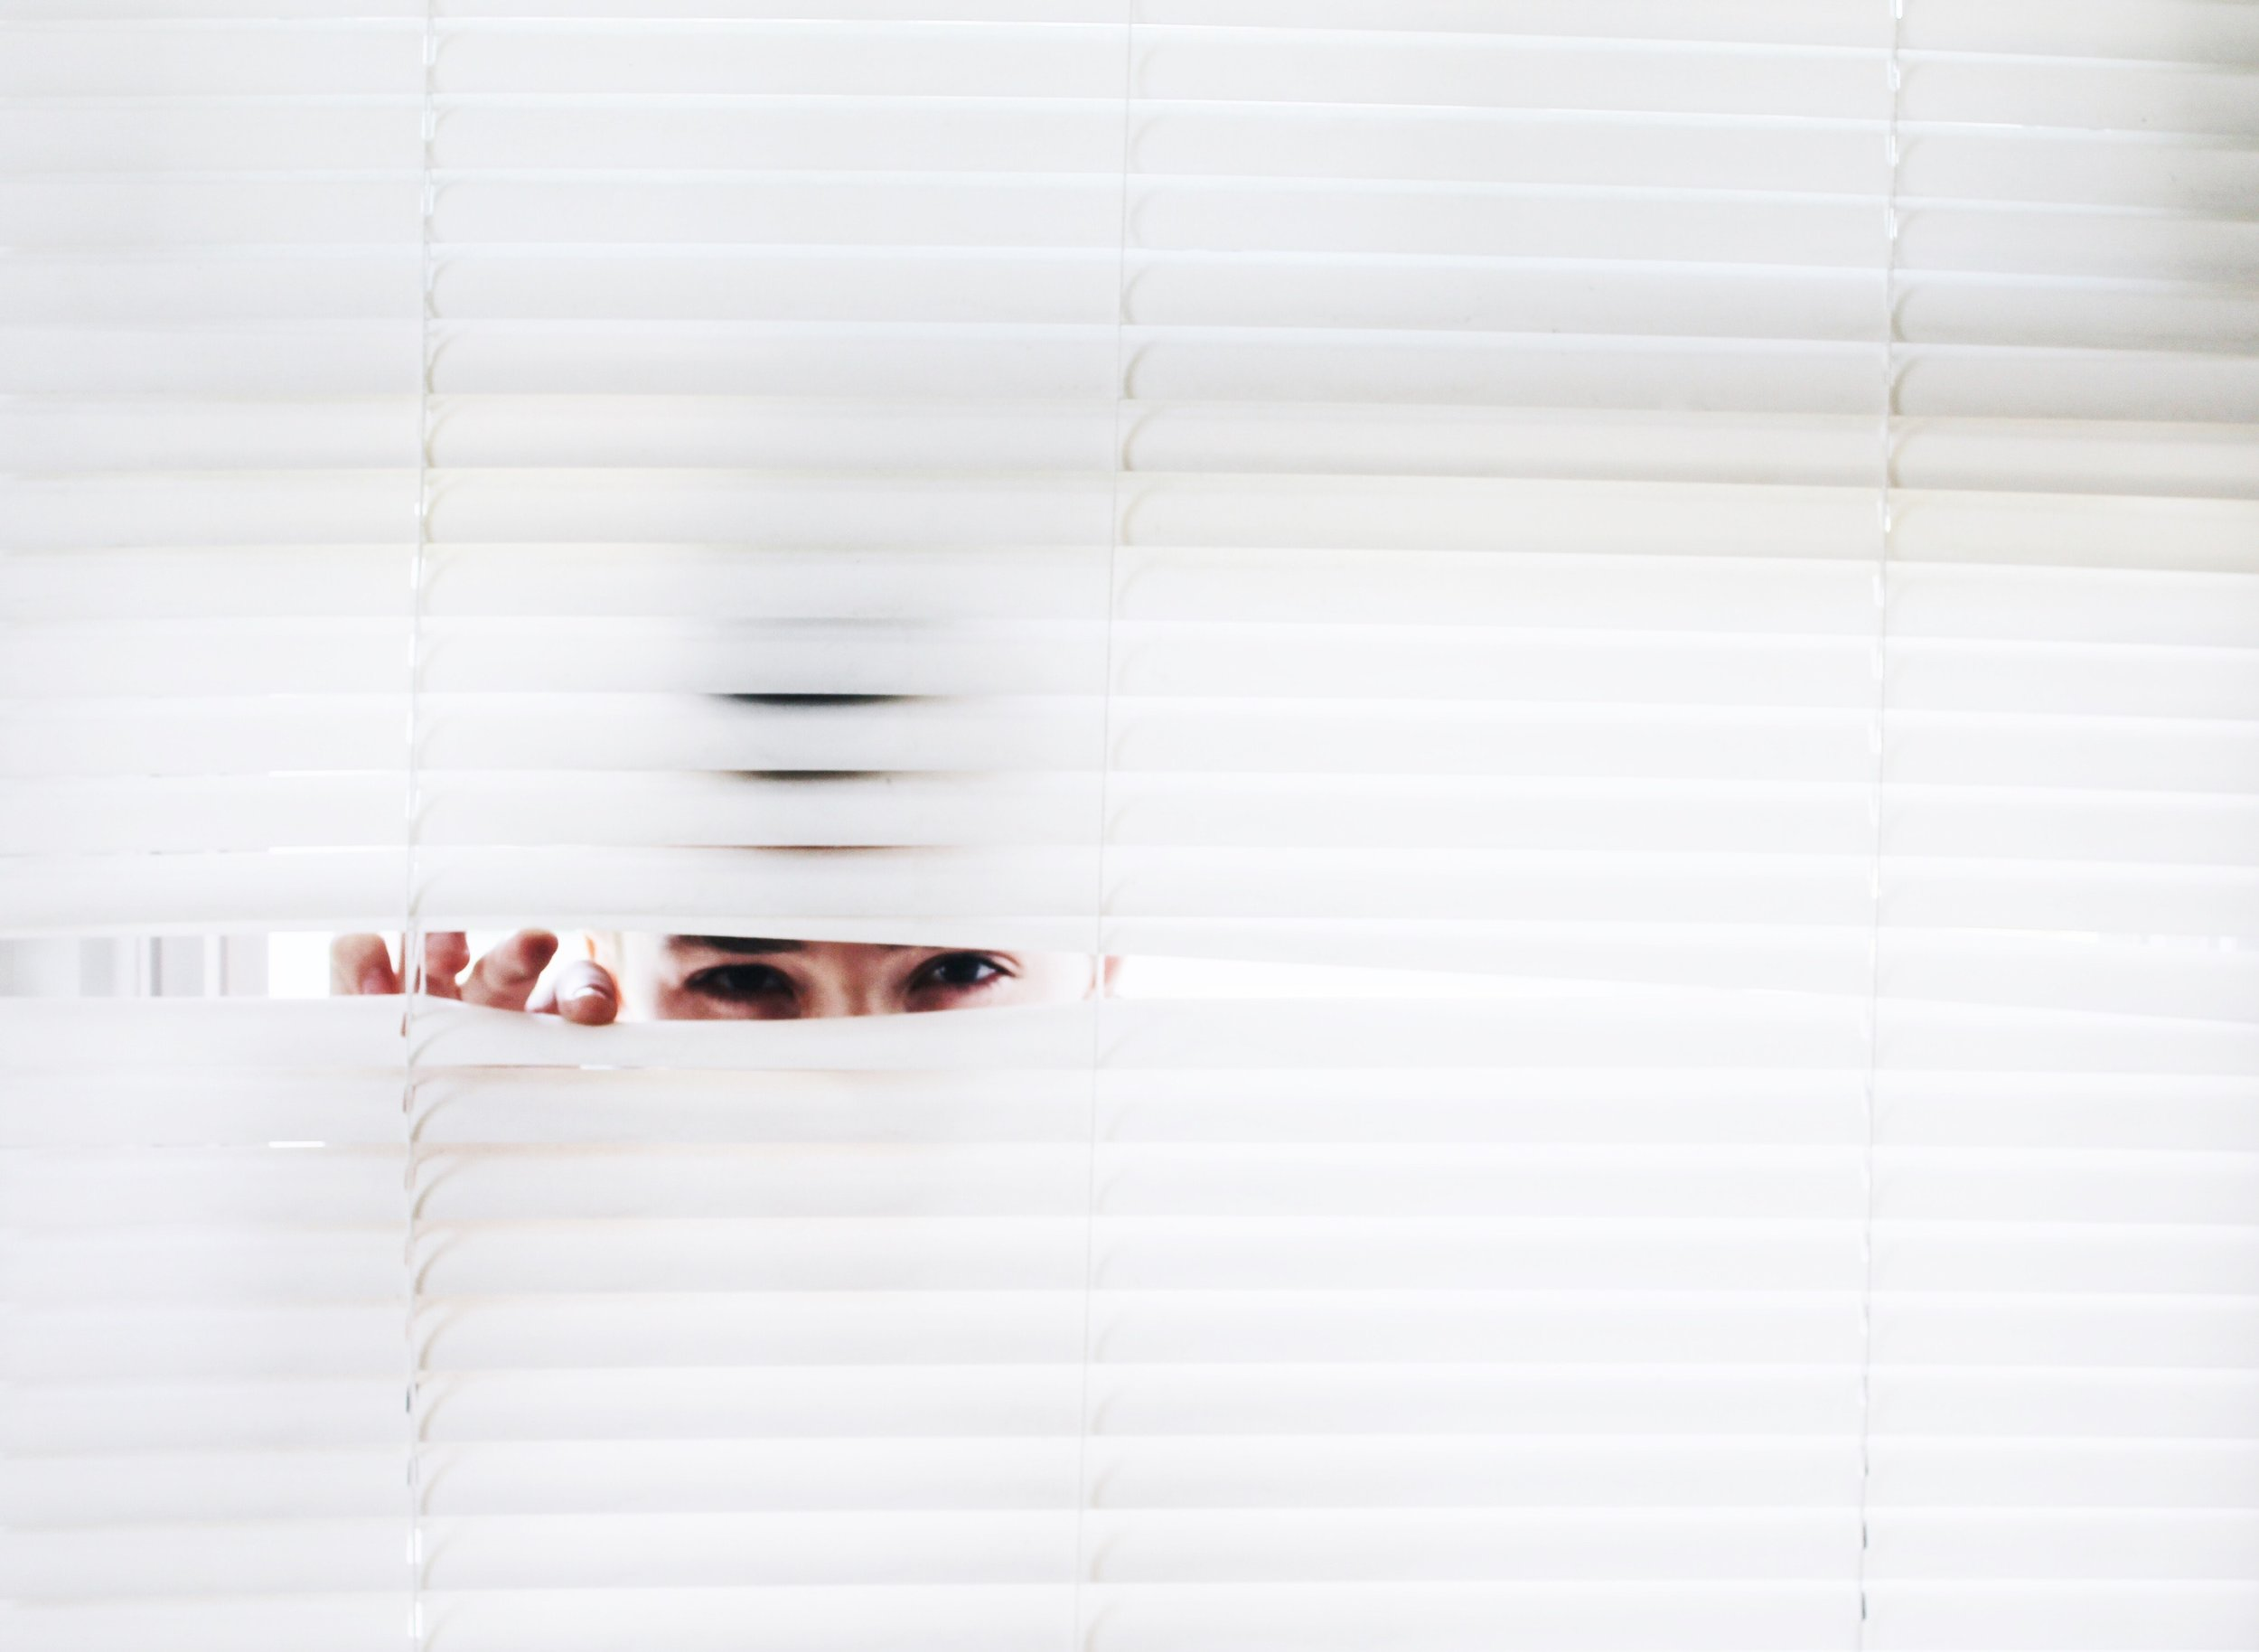 Curtain blinds - home cleaning.jpg